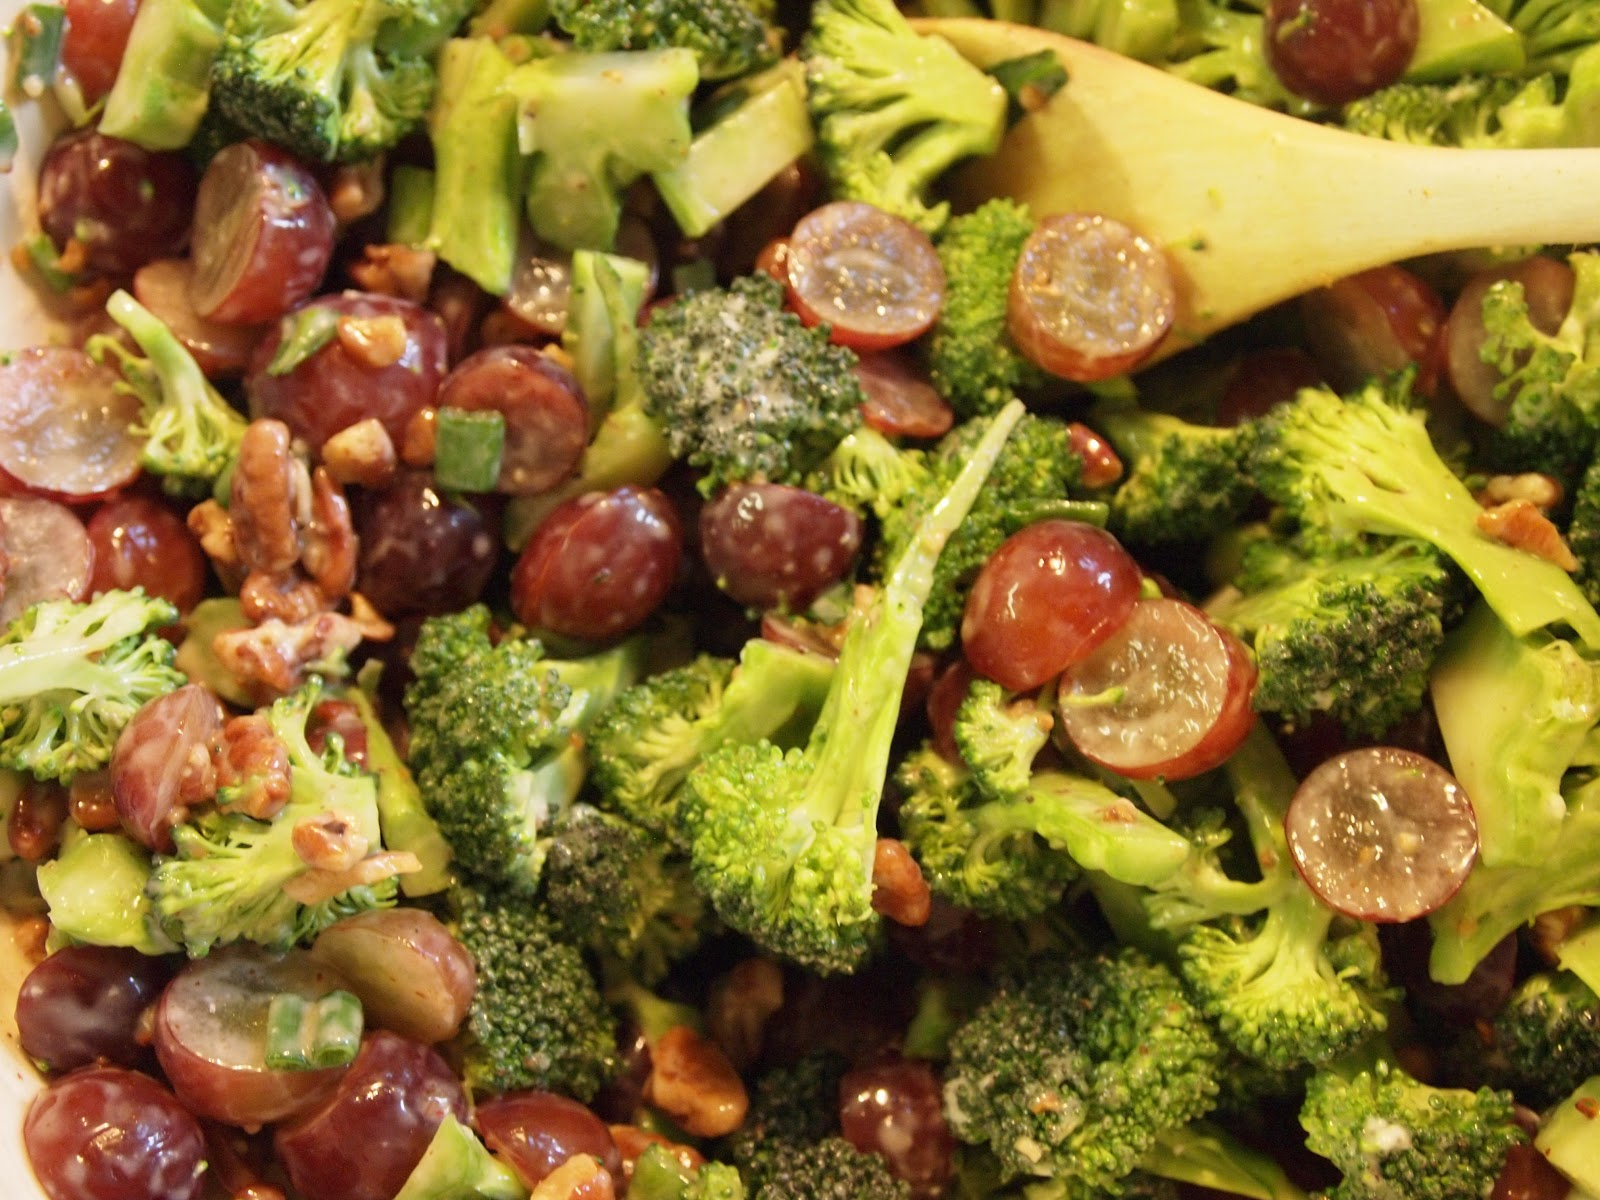 Stuff We Ate: World's Best Broccoli Salad